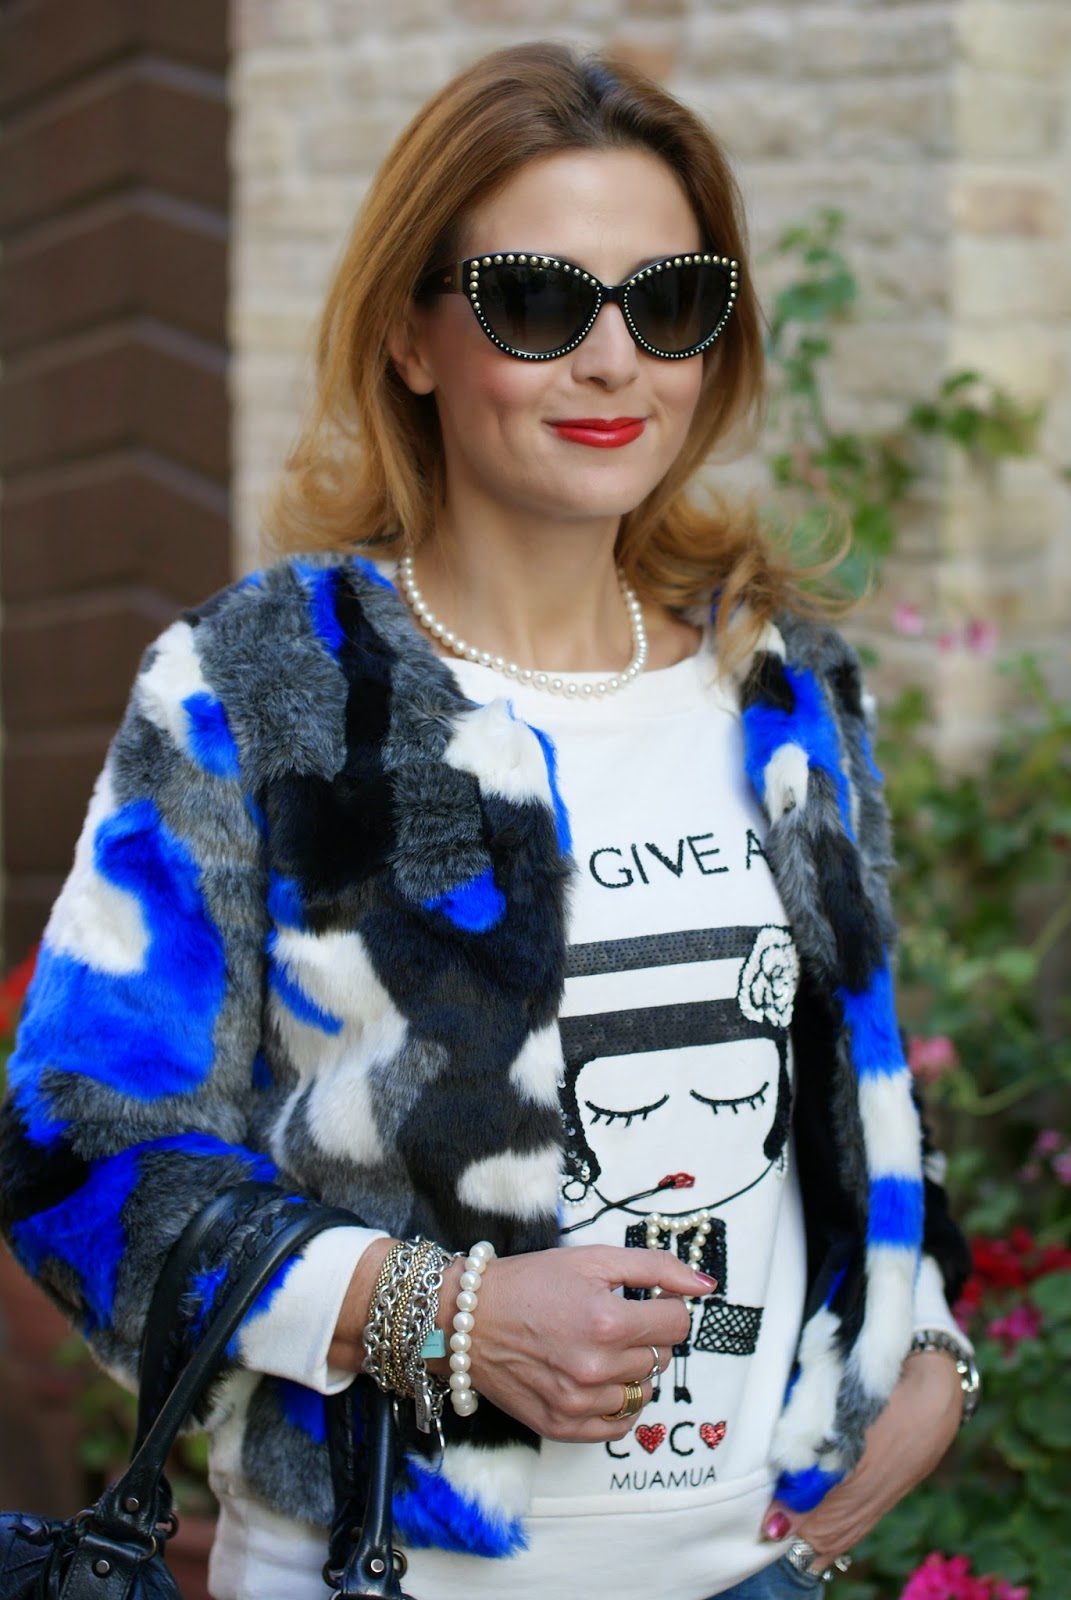 faux fur in cobalt blue, pearls necklace, Mua Mua I don't give a chic sweatshirt, Balenciaga work black, Moschino studded sunglasses, Fashion and Cookies, fashion blogger